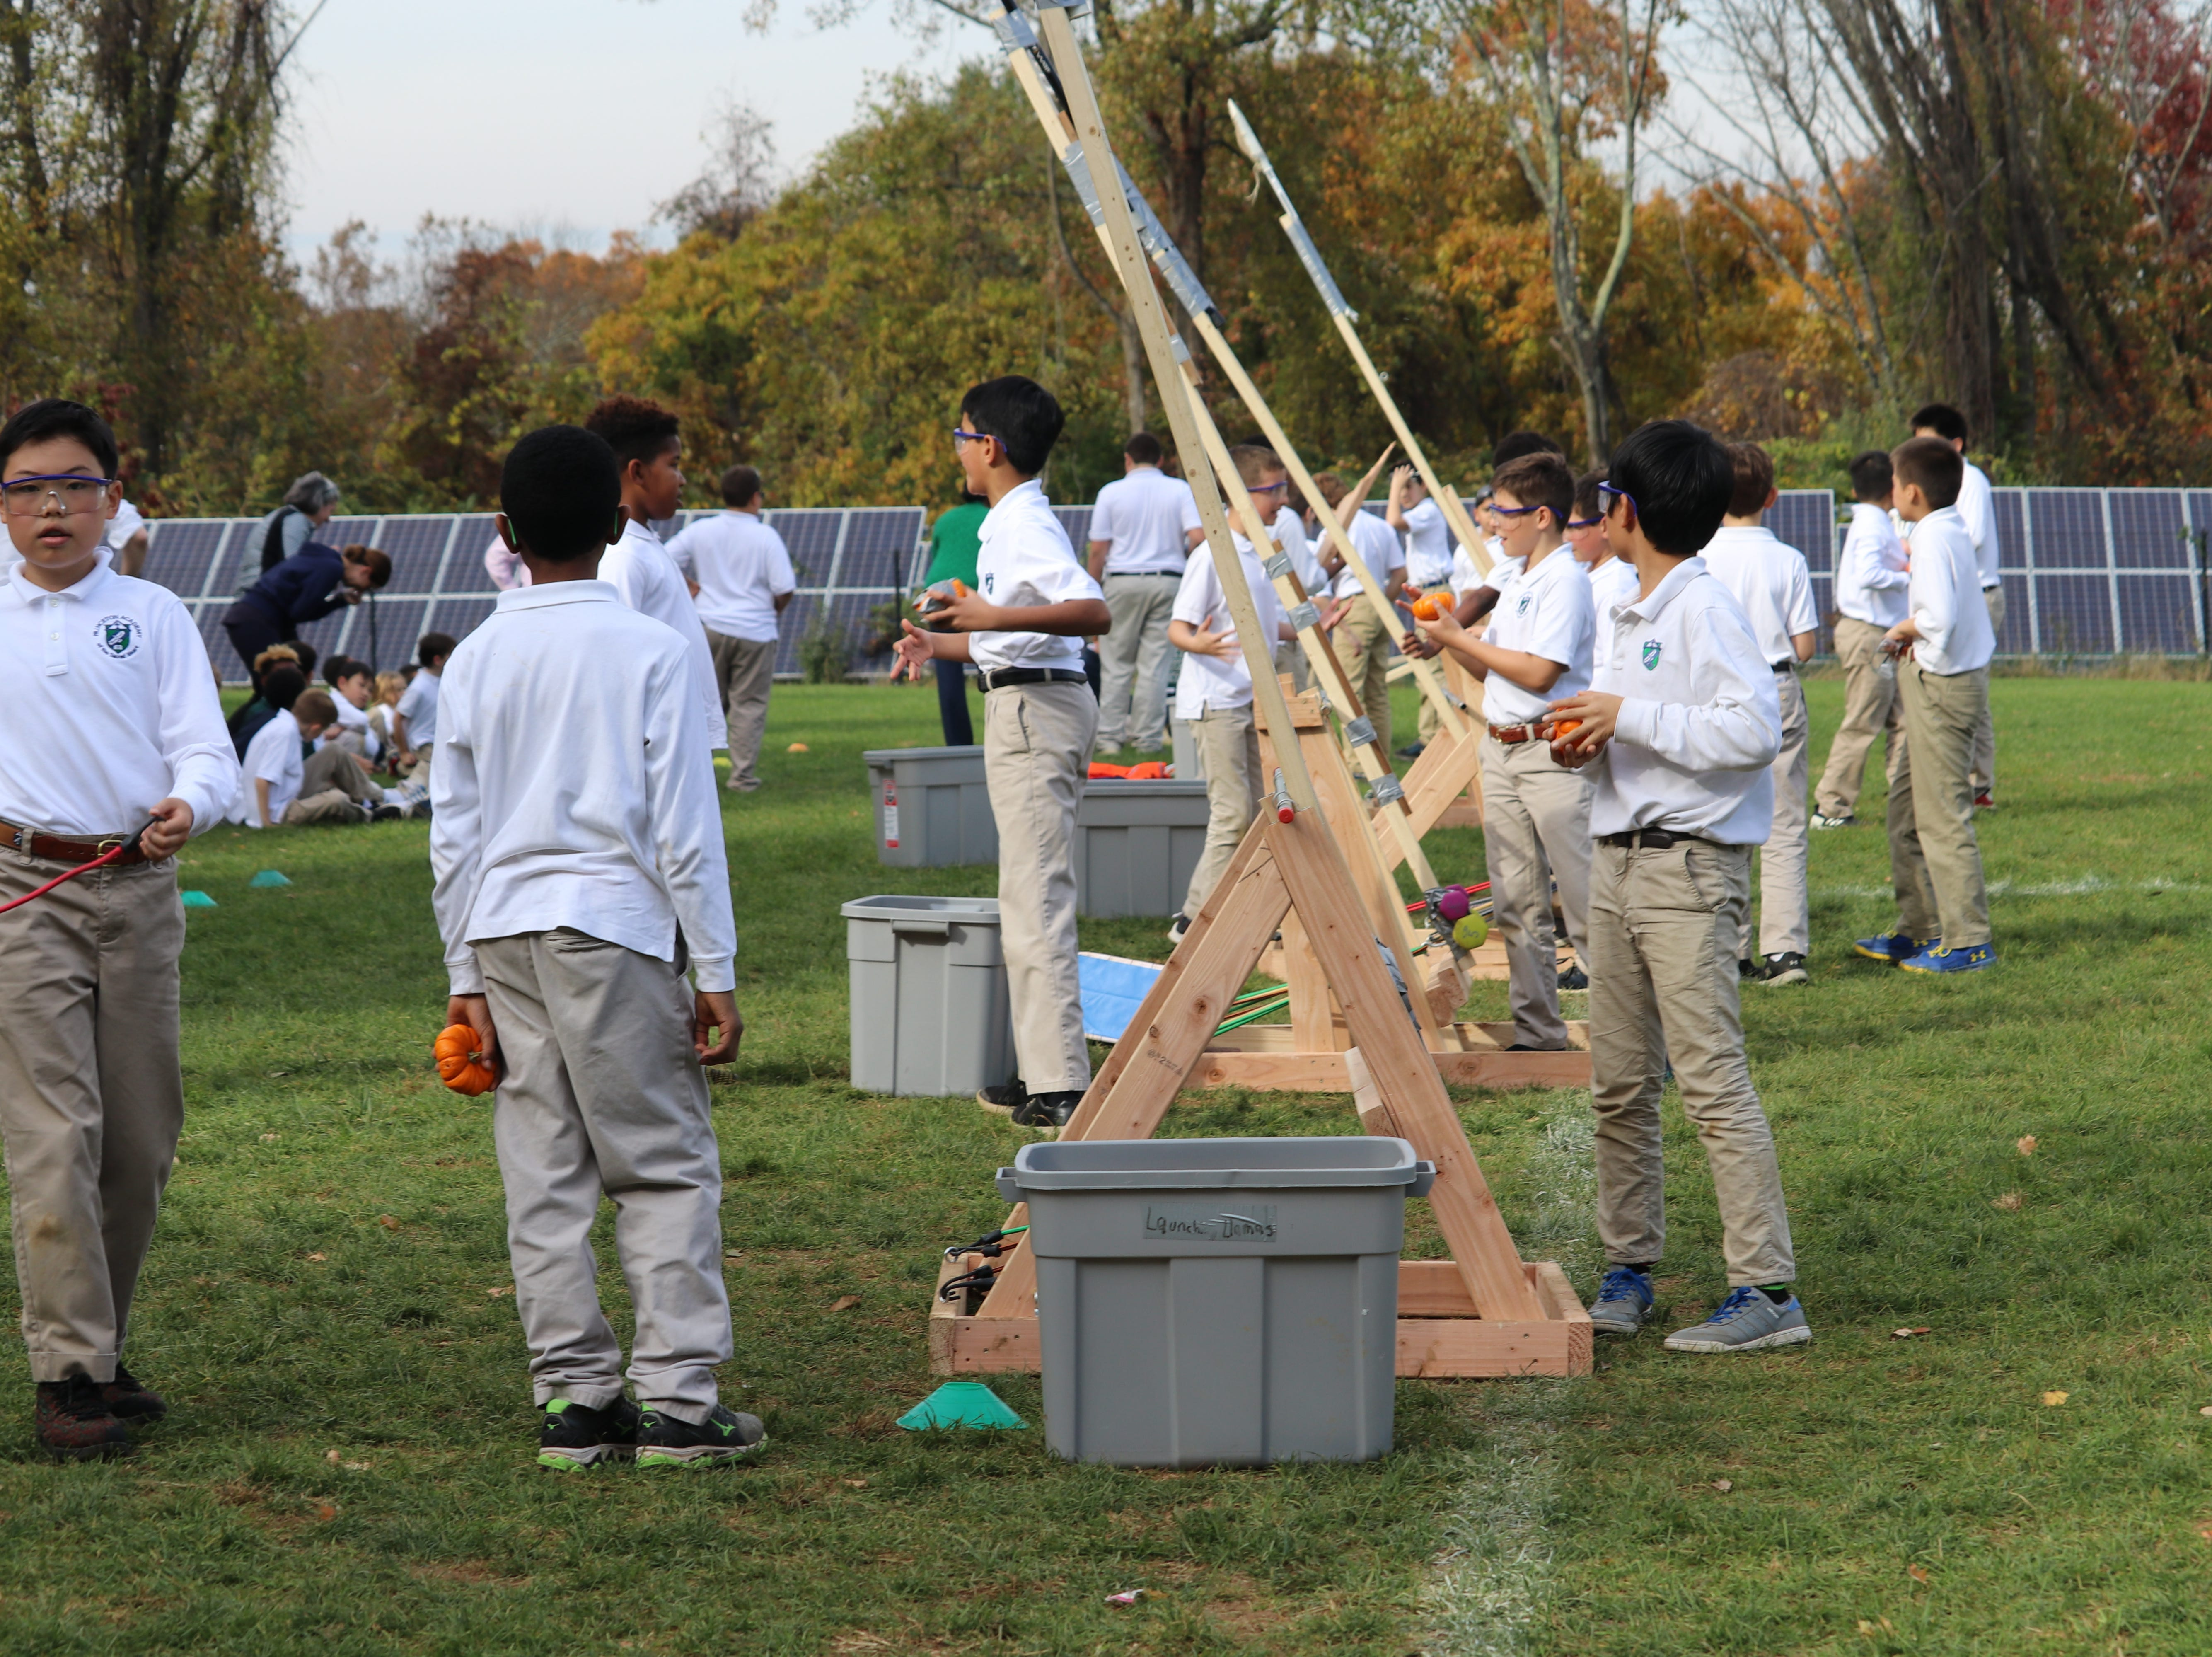 Princeton Academy of the Sacred Heart fifth-graders designed and built catapults to launch mini-pumpkins in a school competition.